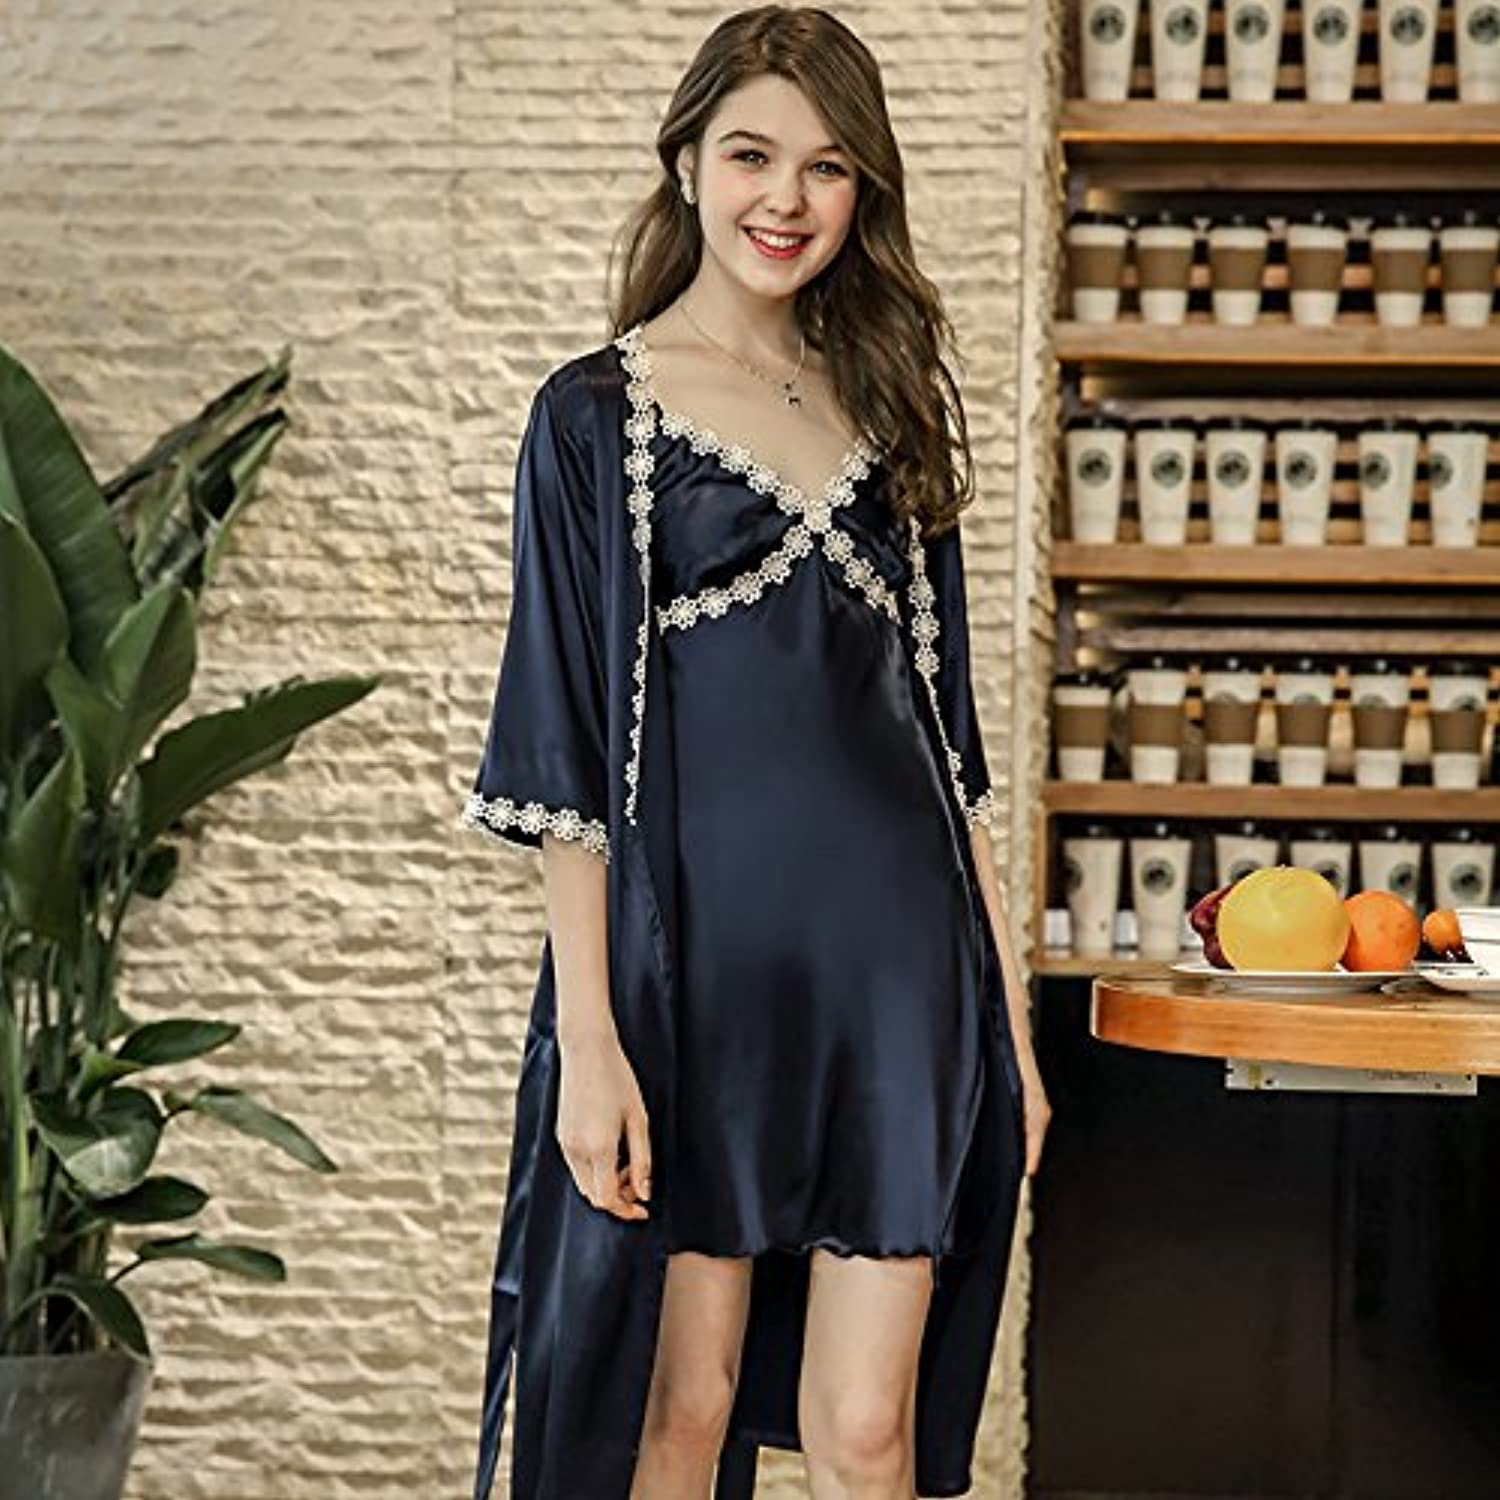 IANXI Home Spring and Summer Simulation Silk Pajamas Women's Suspenders Robe TwoPiece Home Service (color   Navy, Size   L)